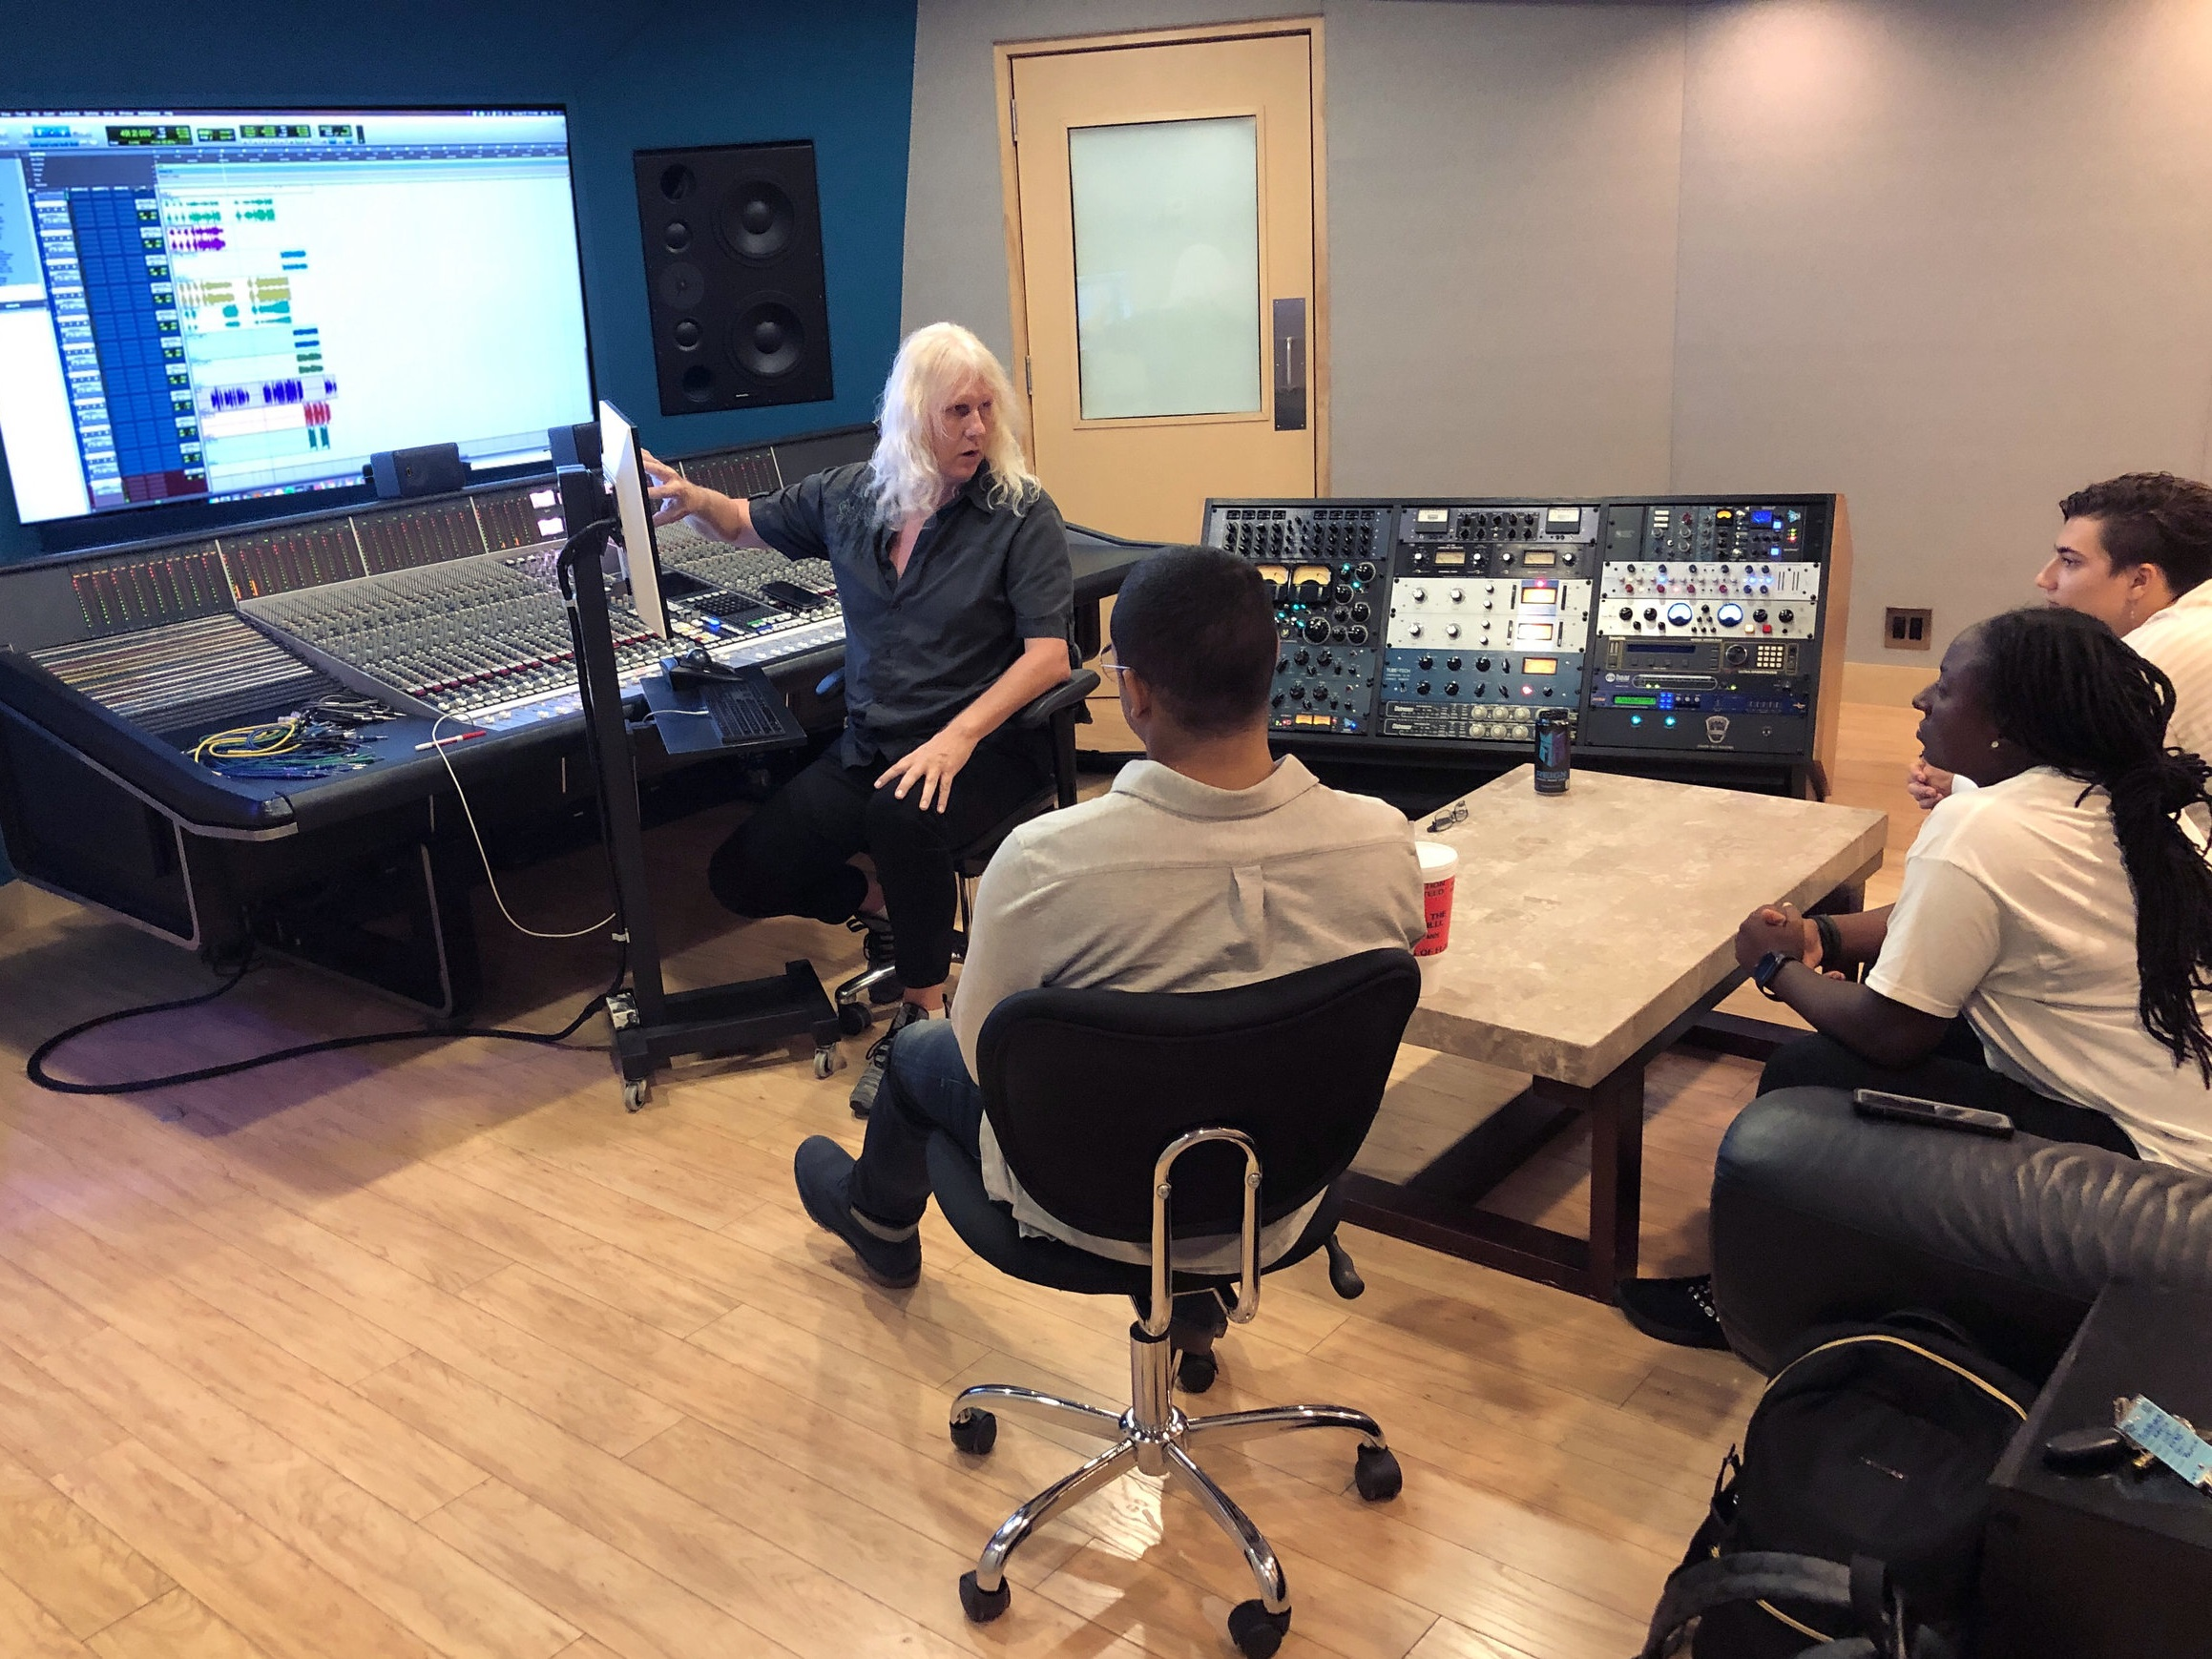 WEEK 8: Mixing Session - The Class  • Learn how to edit a session  • Understand hybrid workflow (analog/digital)  • Become familiar with EQ, compression, and summing  • Blend and complete a mix